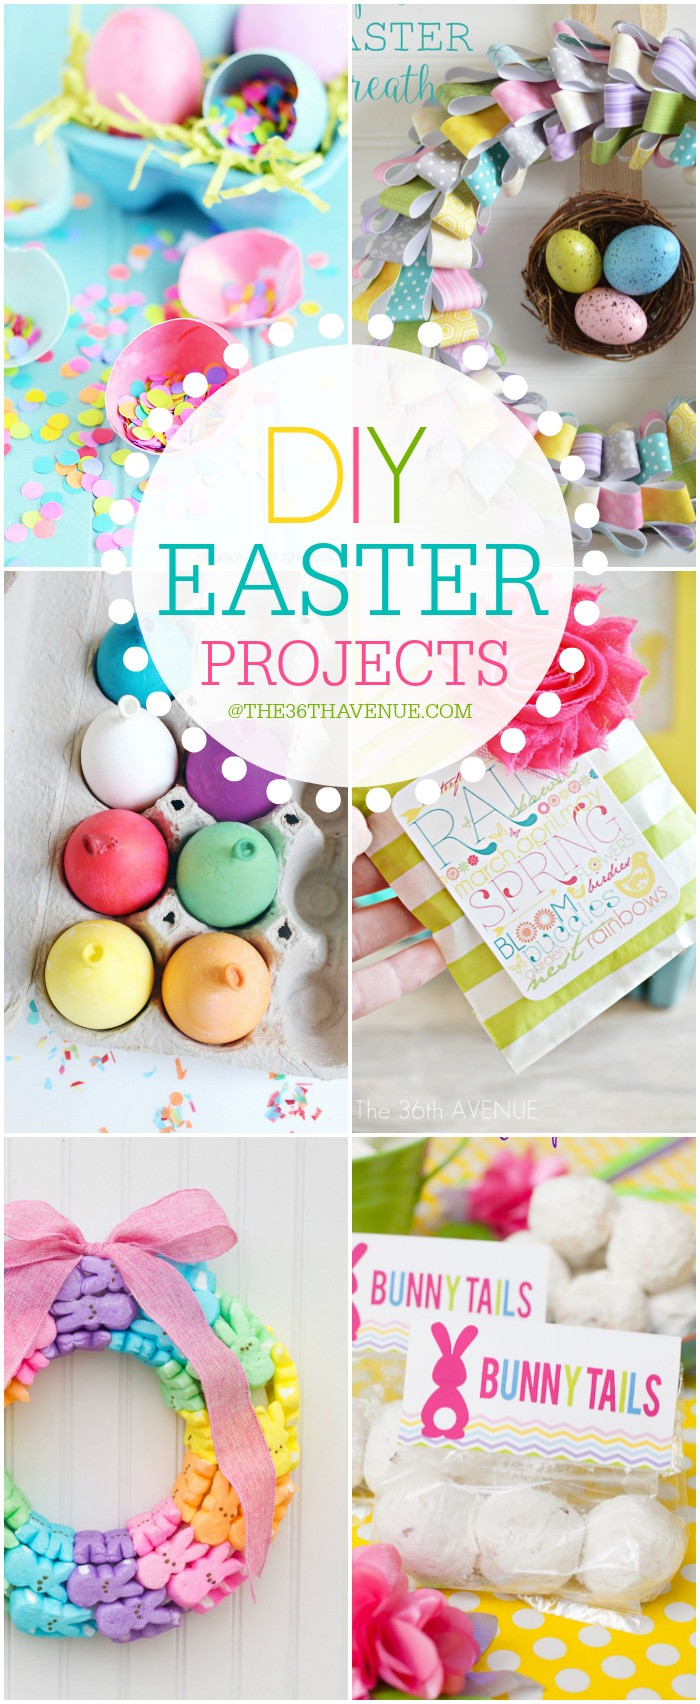 Easter Party Craft Ideas  The 36th AVENUE Easter Crafts and DIY Decor Ideas